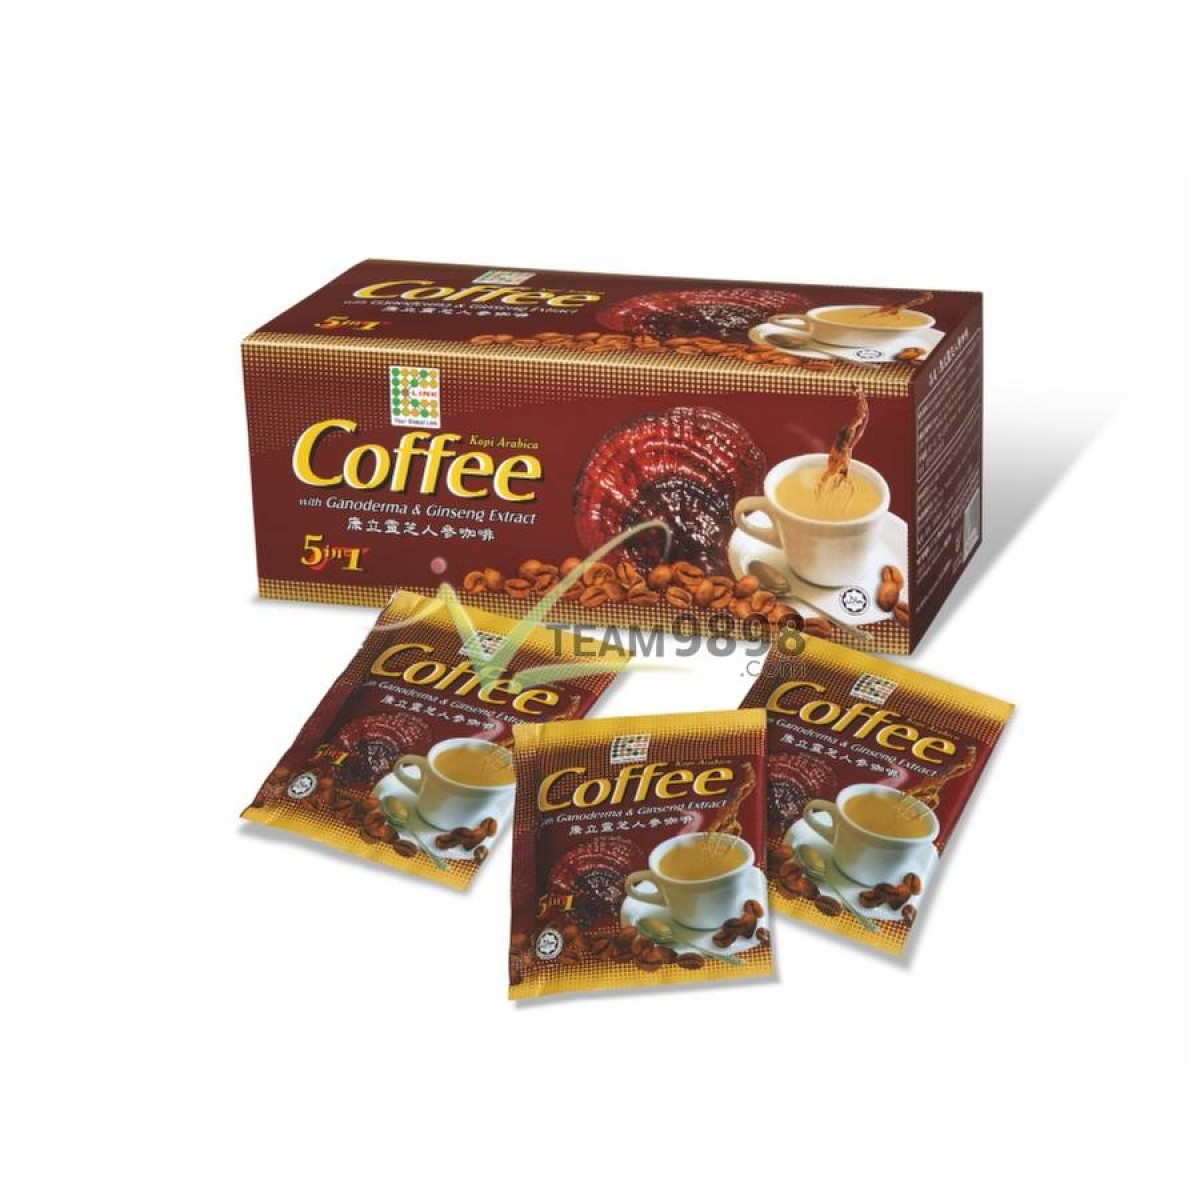 K-Lingzhi 5-in-1 Coffee